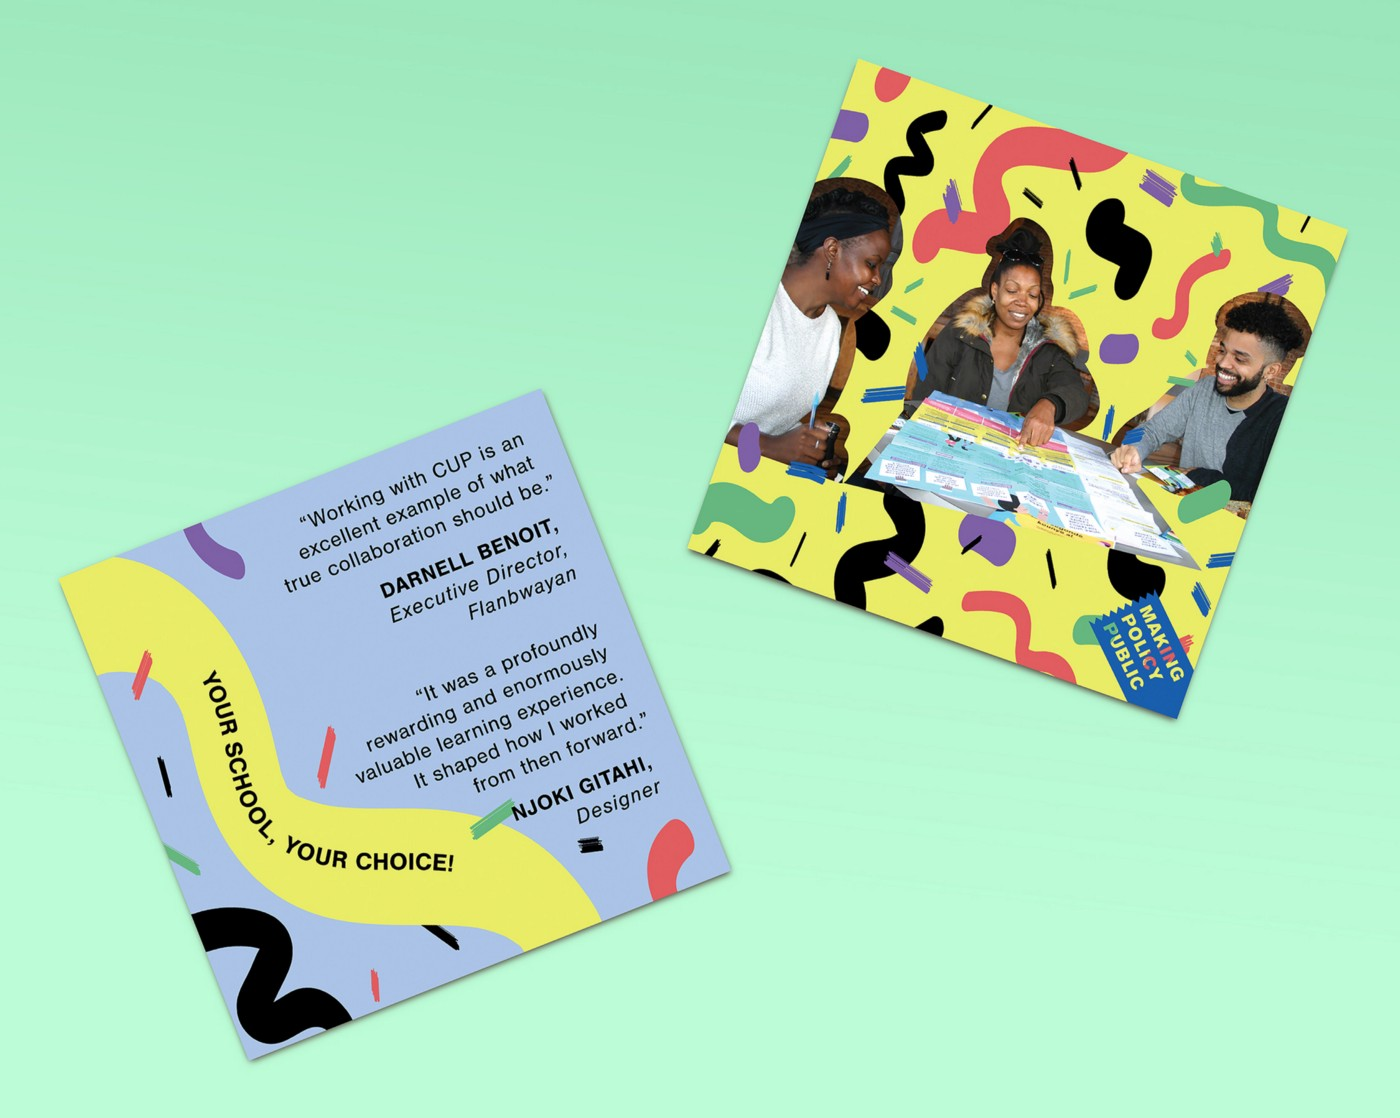 Two designed pieces, one with black text on a pale blue background, and the other with three Black people sitting around a large sheet of paper. Both pieces have abstract yellow, black, red, and green shapes in the background, and both pieces are superimposed on a light green background.